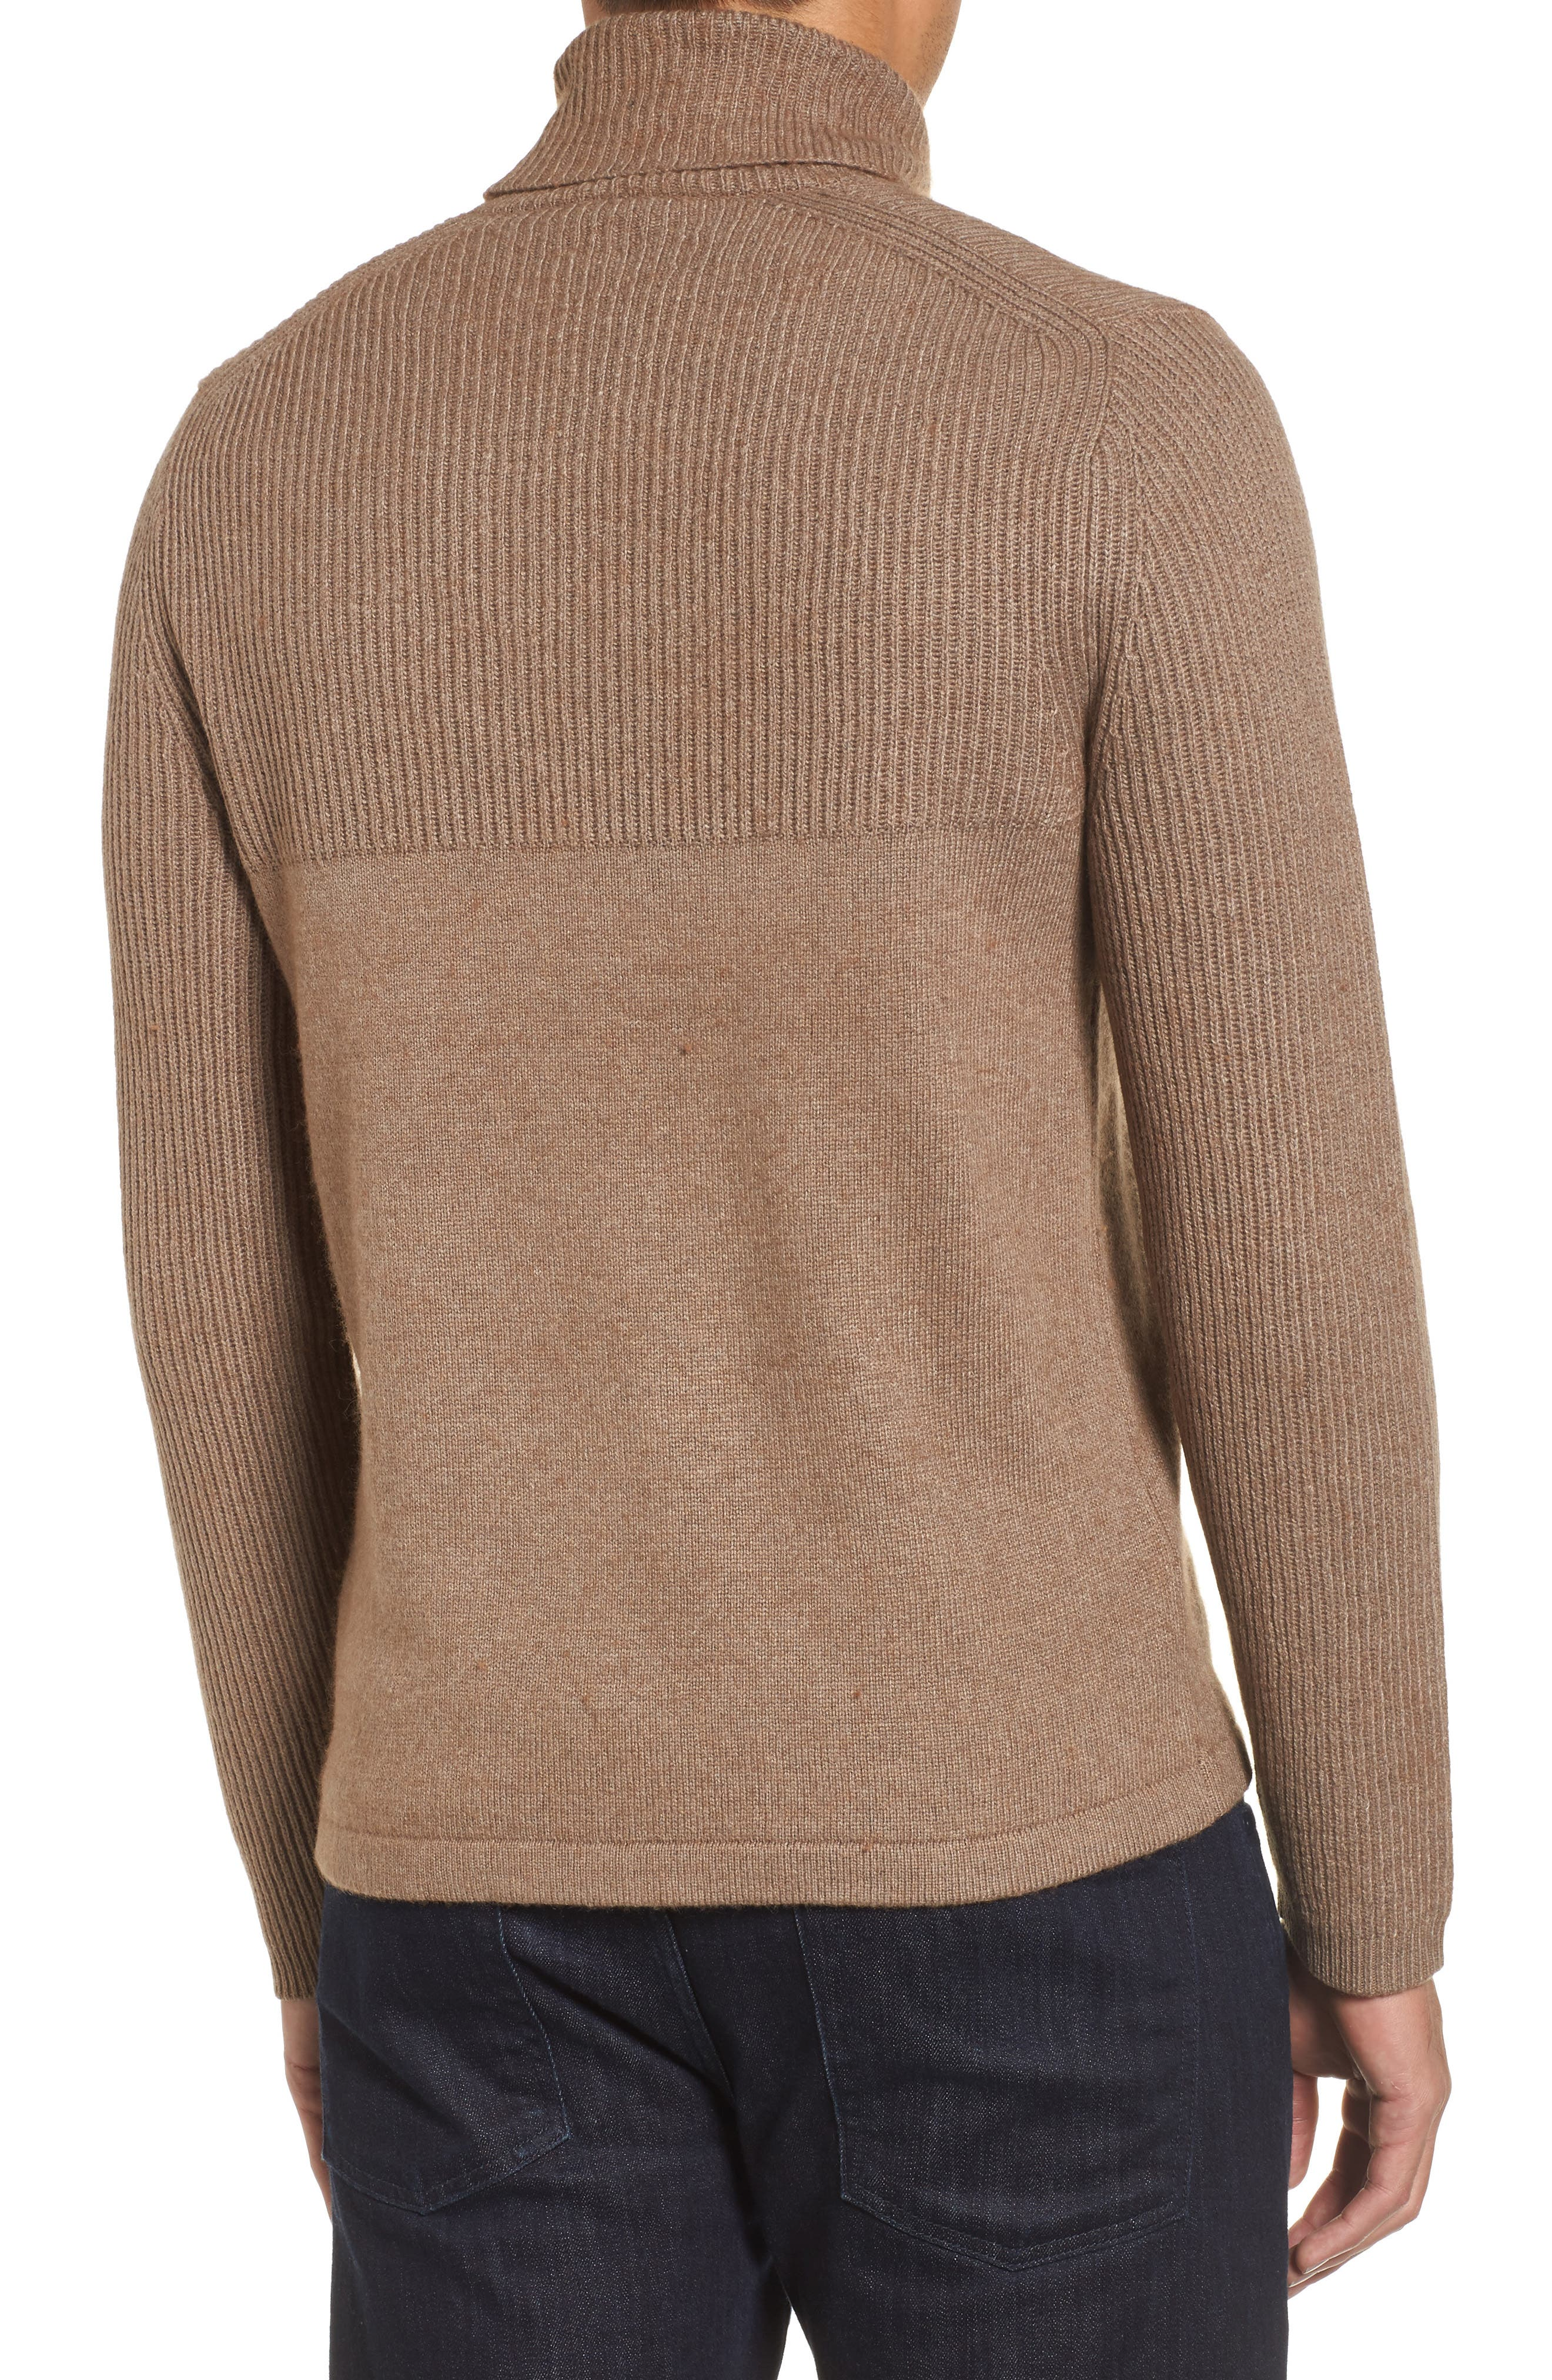 Alternate Image 2  - Zachary Prell Mix Stitch Turtleneck Sweater